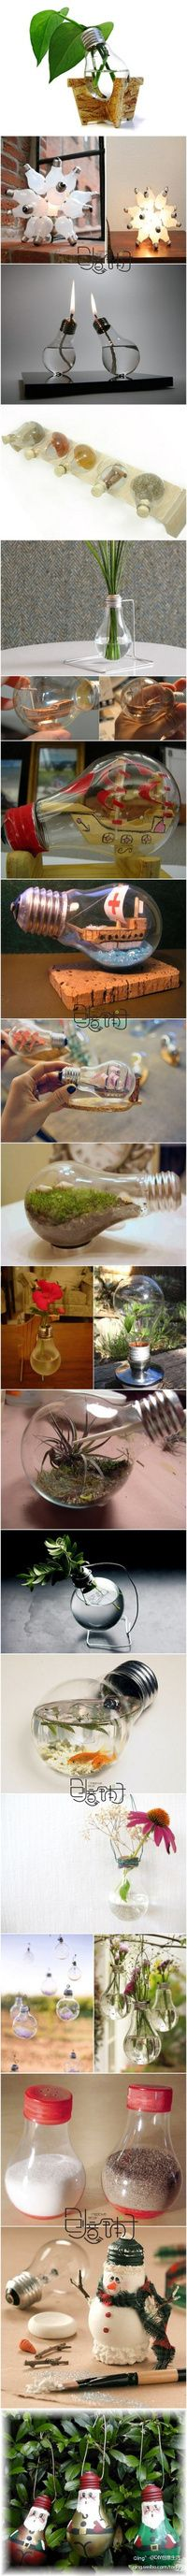 Cute things to do with lightbulbs